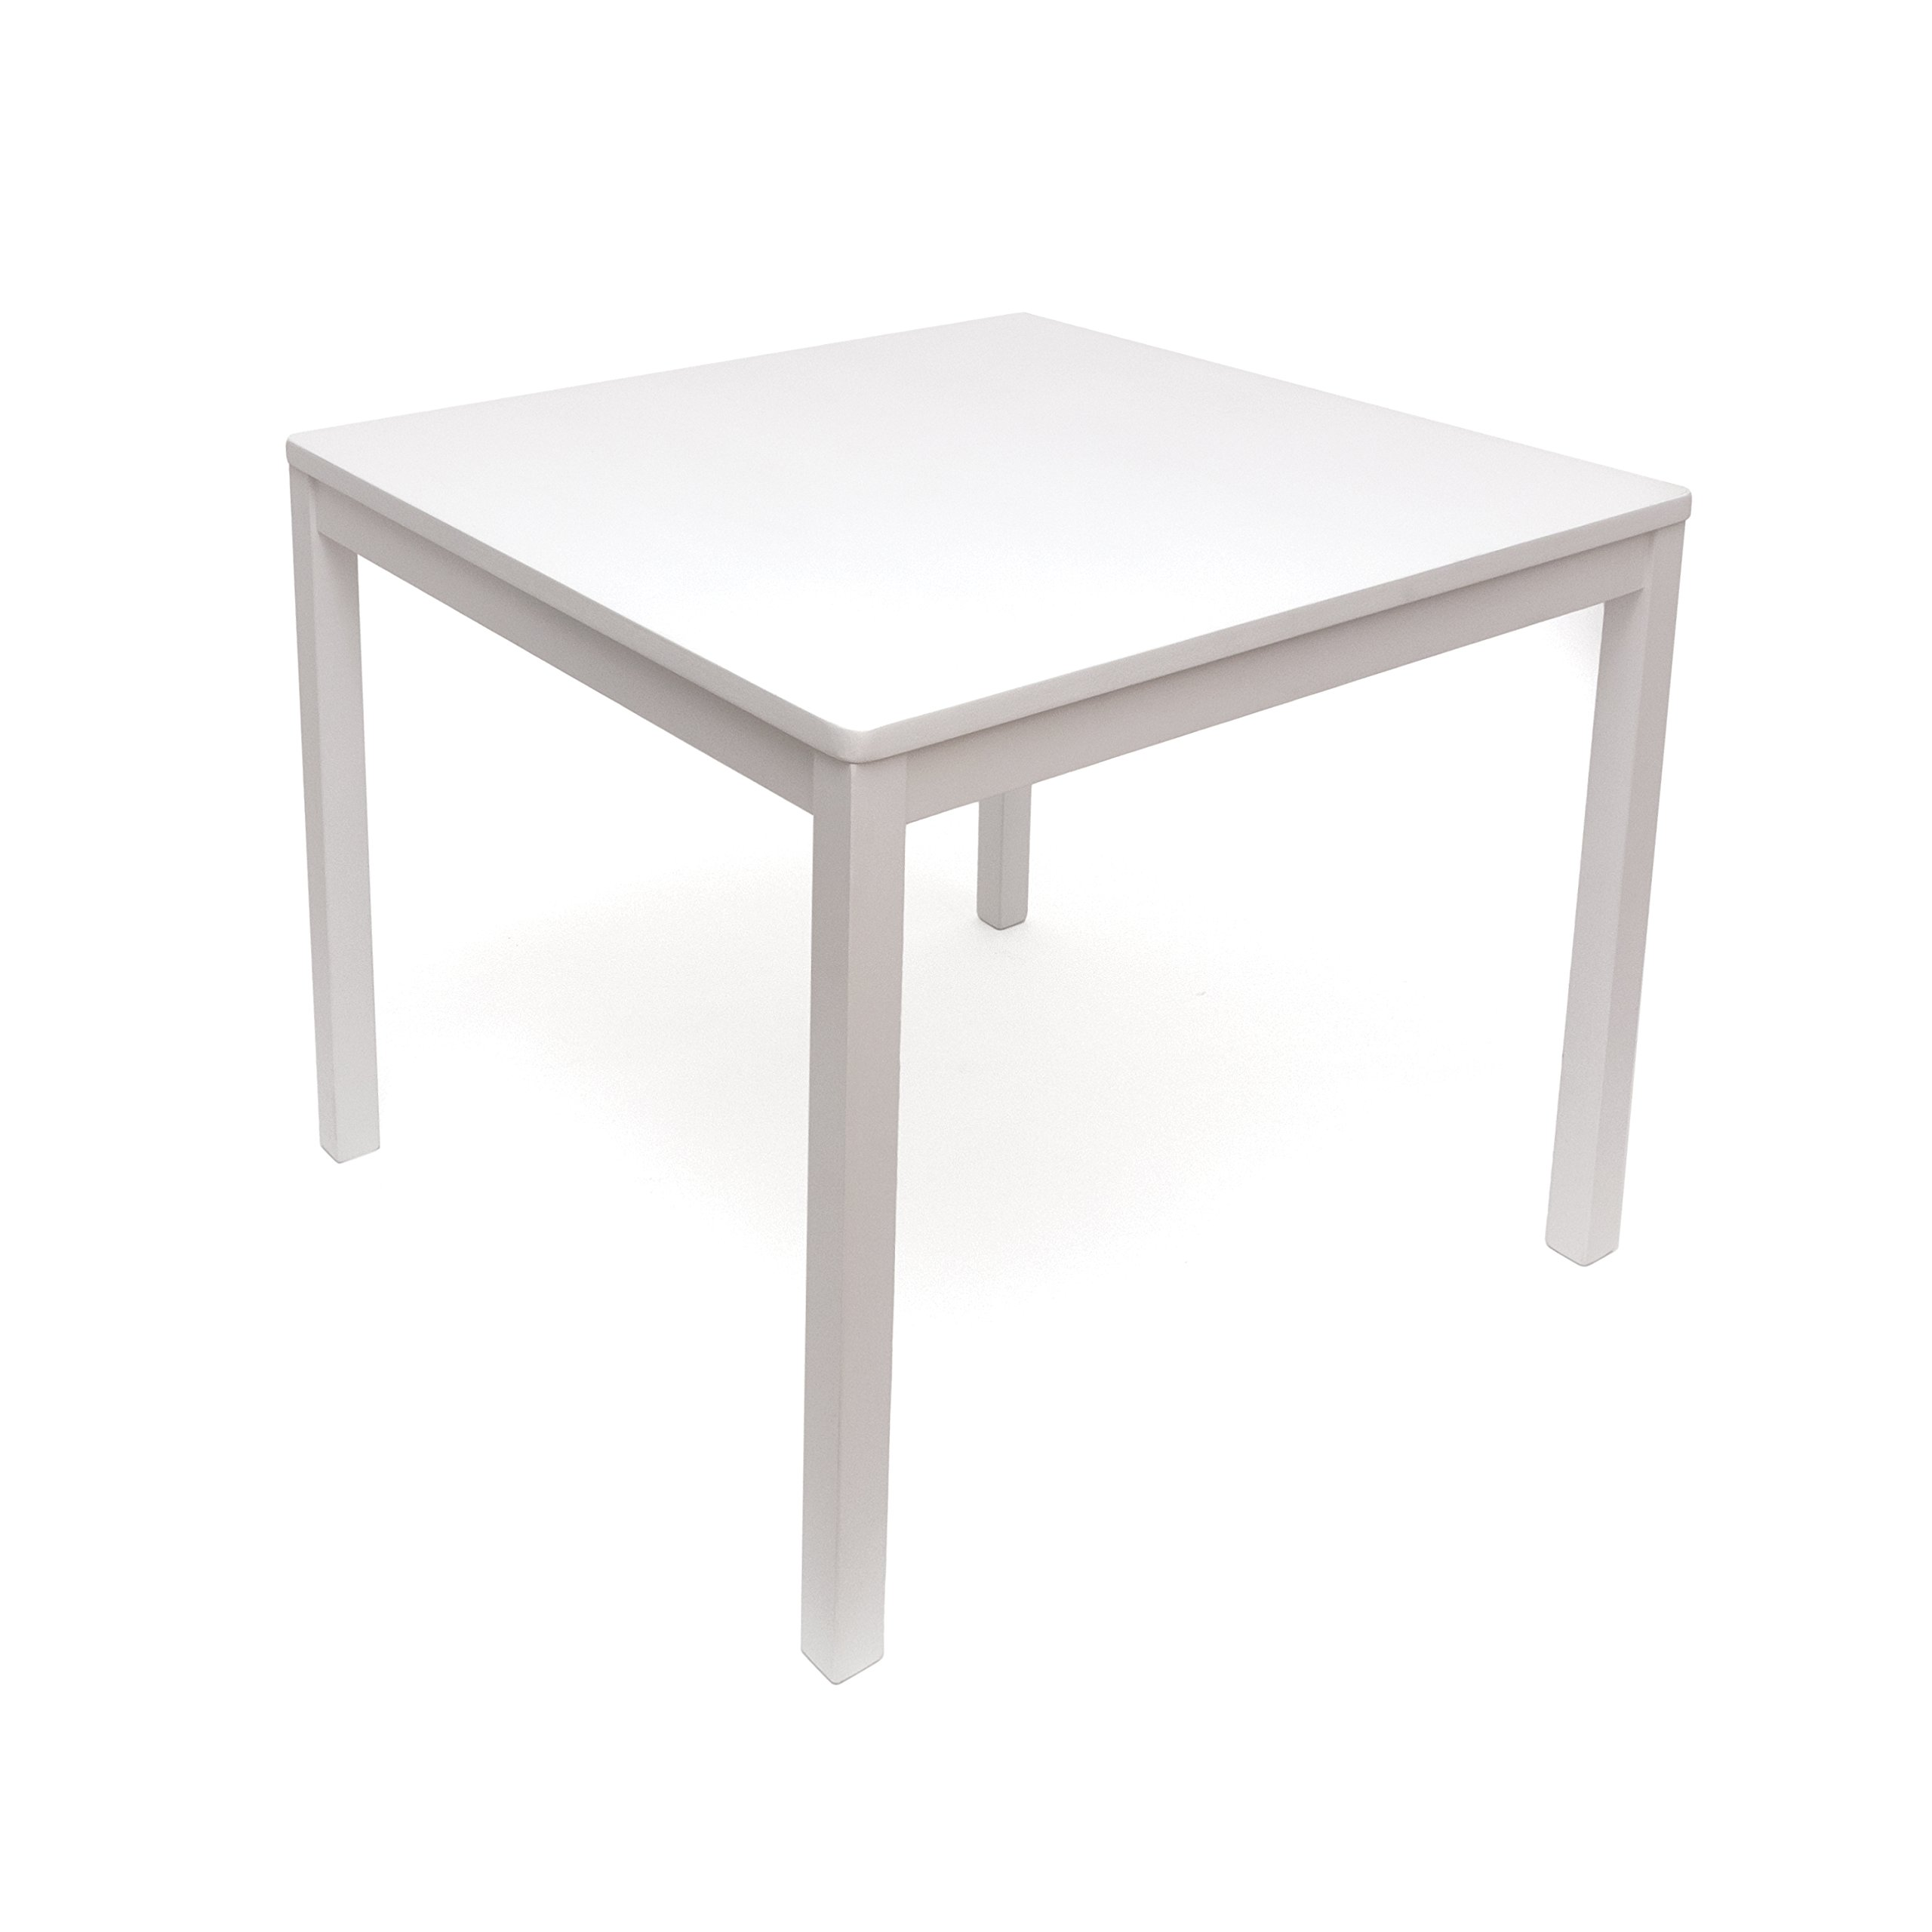 Lipper International 585W Child's Square Table, 23.5'' W x 23.5'' D x 20'' H, White by Lipper International